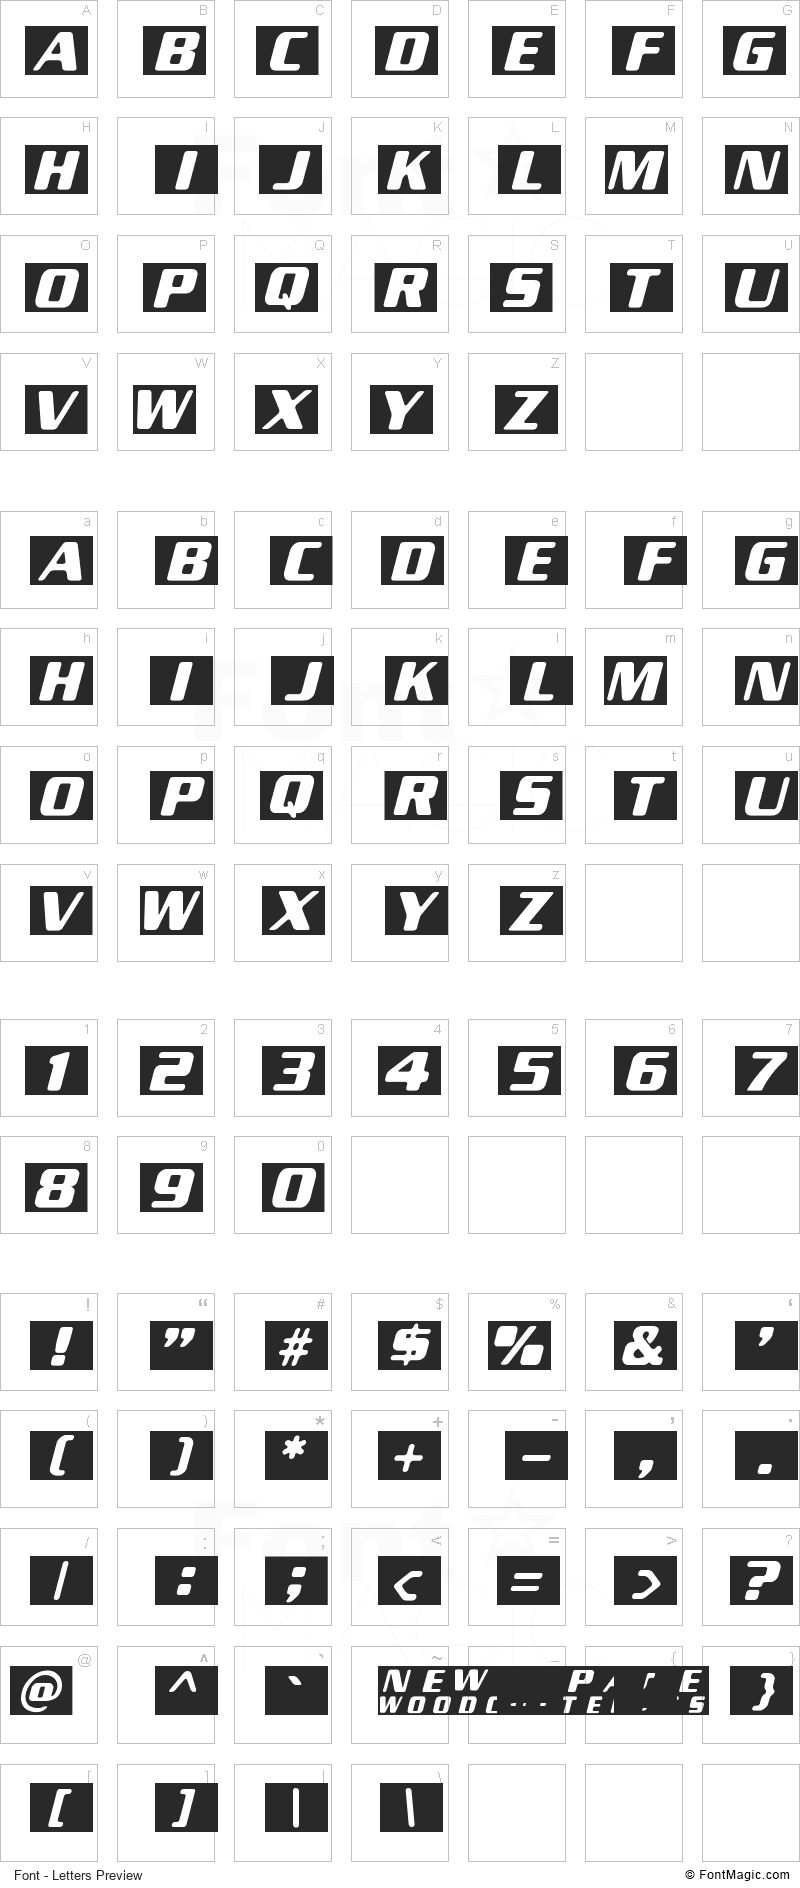 New Space Font - All Latters Preview Chart